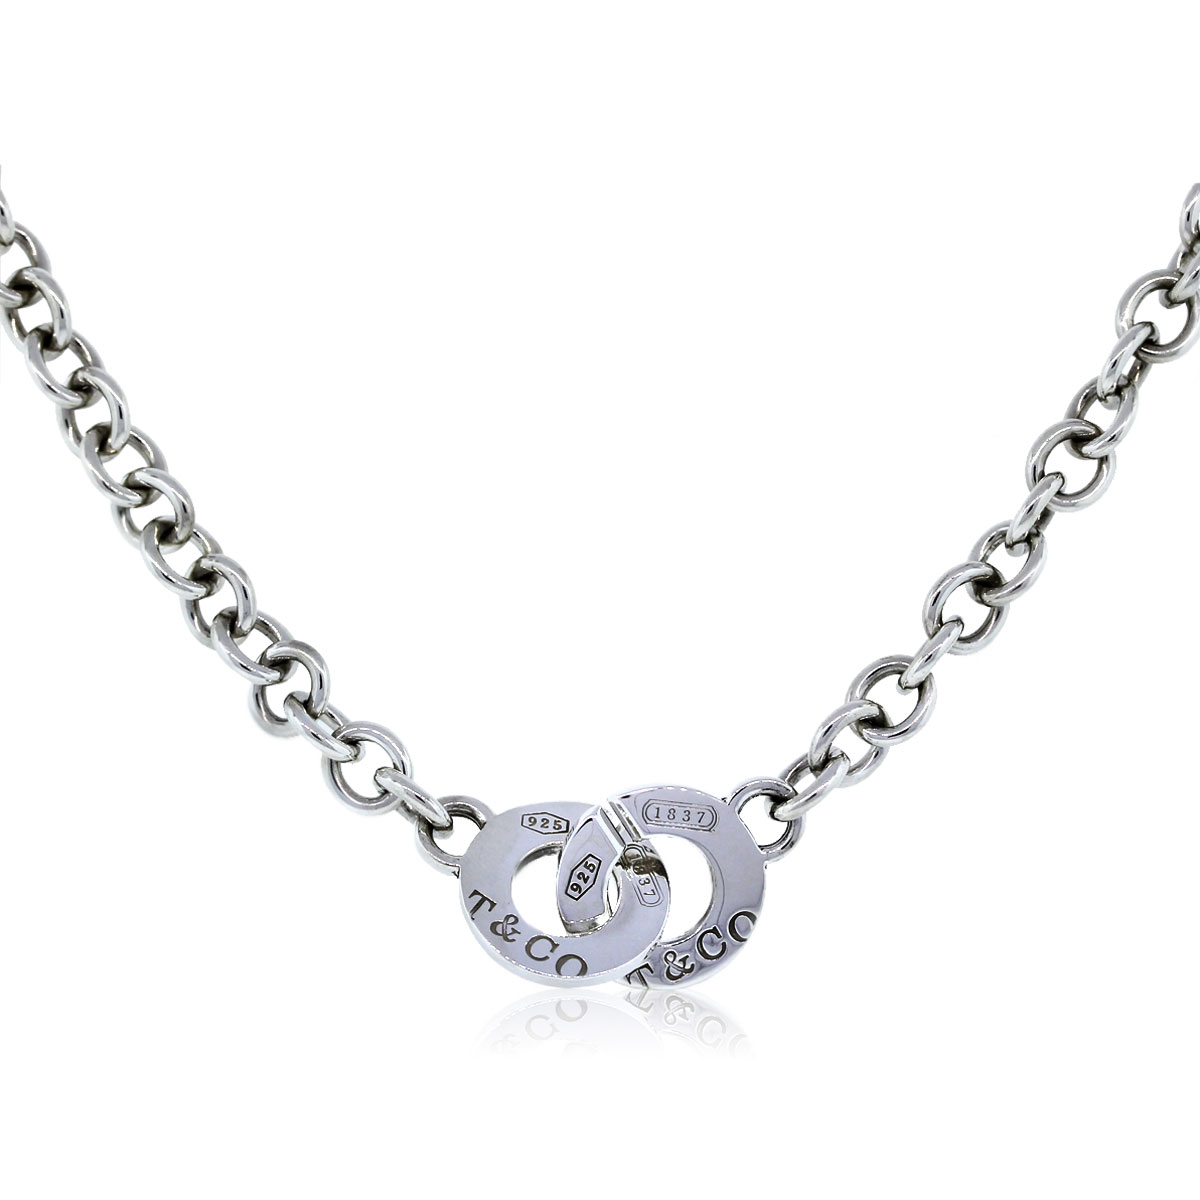 tiffany co sterling silver 1837 toggle chain necklace. Black Bedroom Furniture Sets. Home Design Ideas